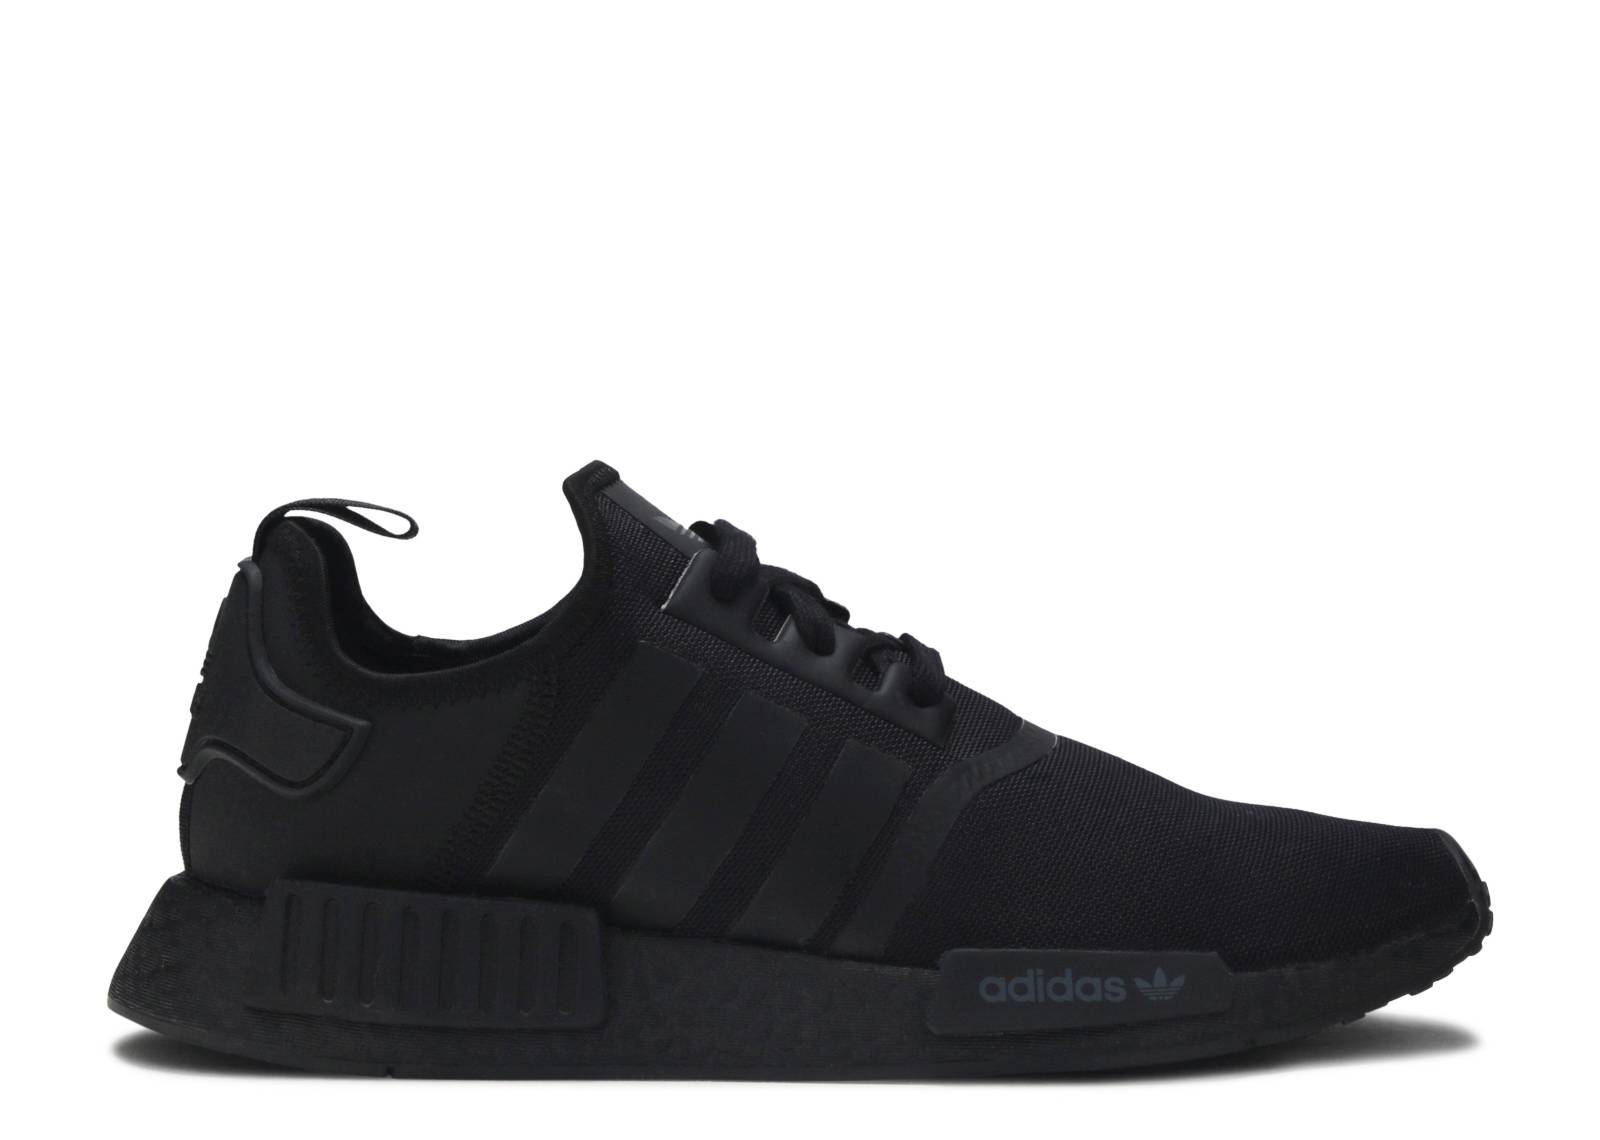 NMD_R1 Shoes in 2019 | Adidas nmd r1, Adidas nmd, Nmd r1